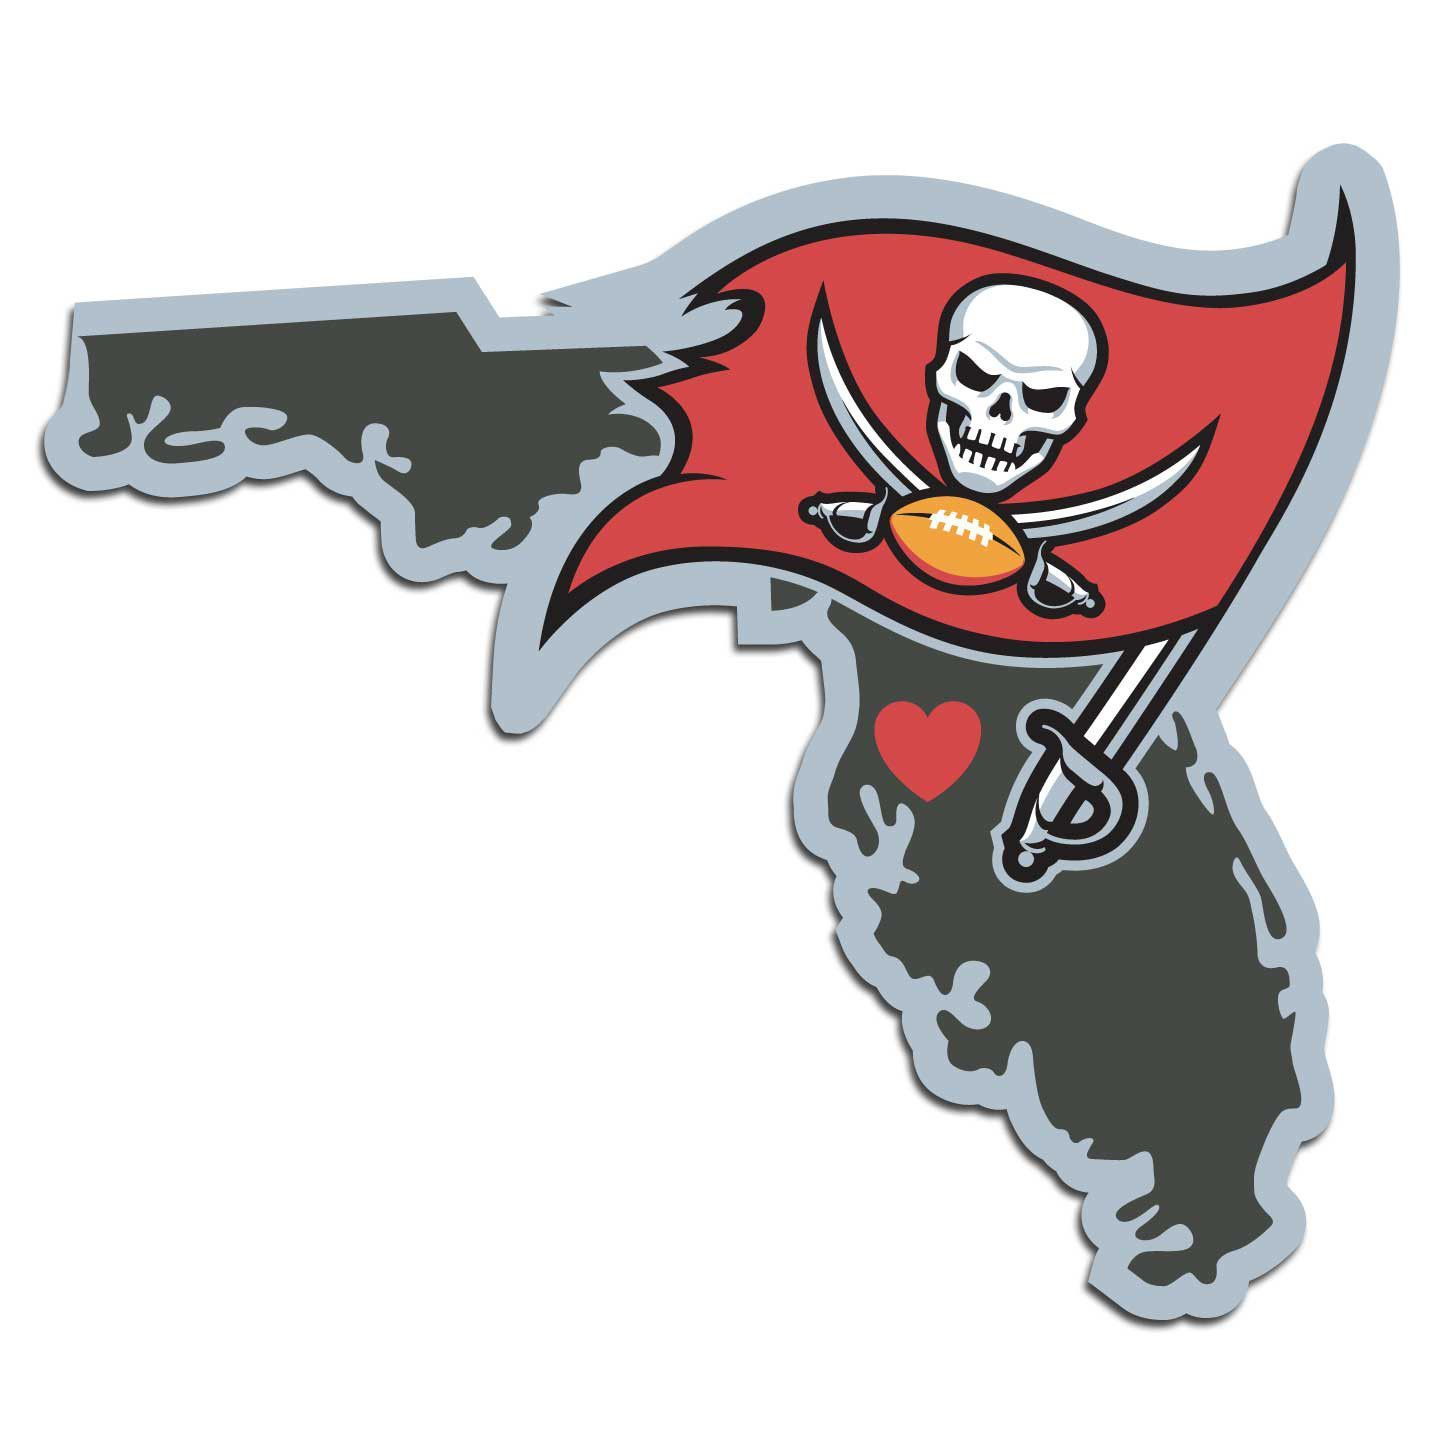 Tampa Bay Buccaneers Home State Decal Tampa Bay Buccaneers Logo Buccaneer Homes Tampa Bay Buccaneers